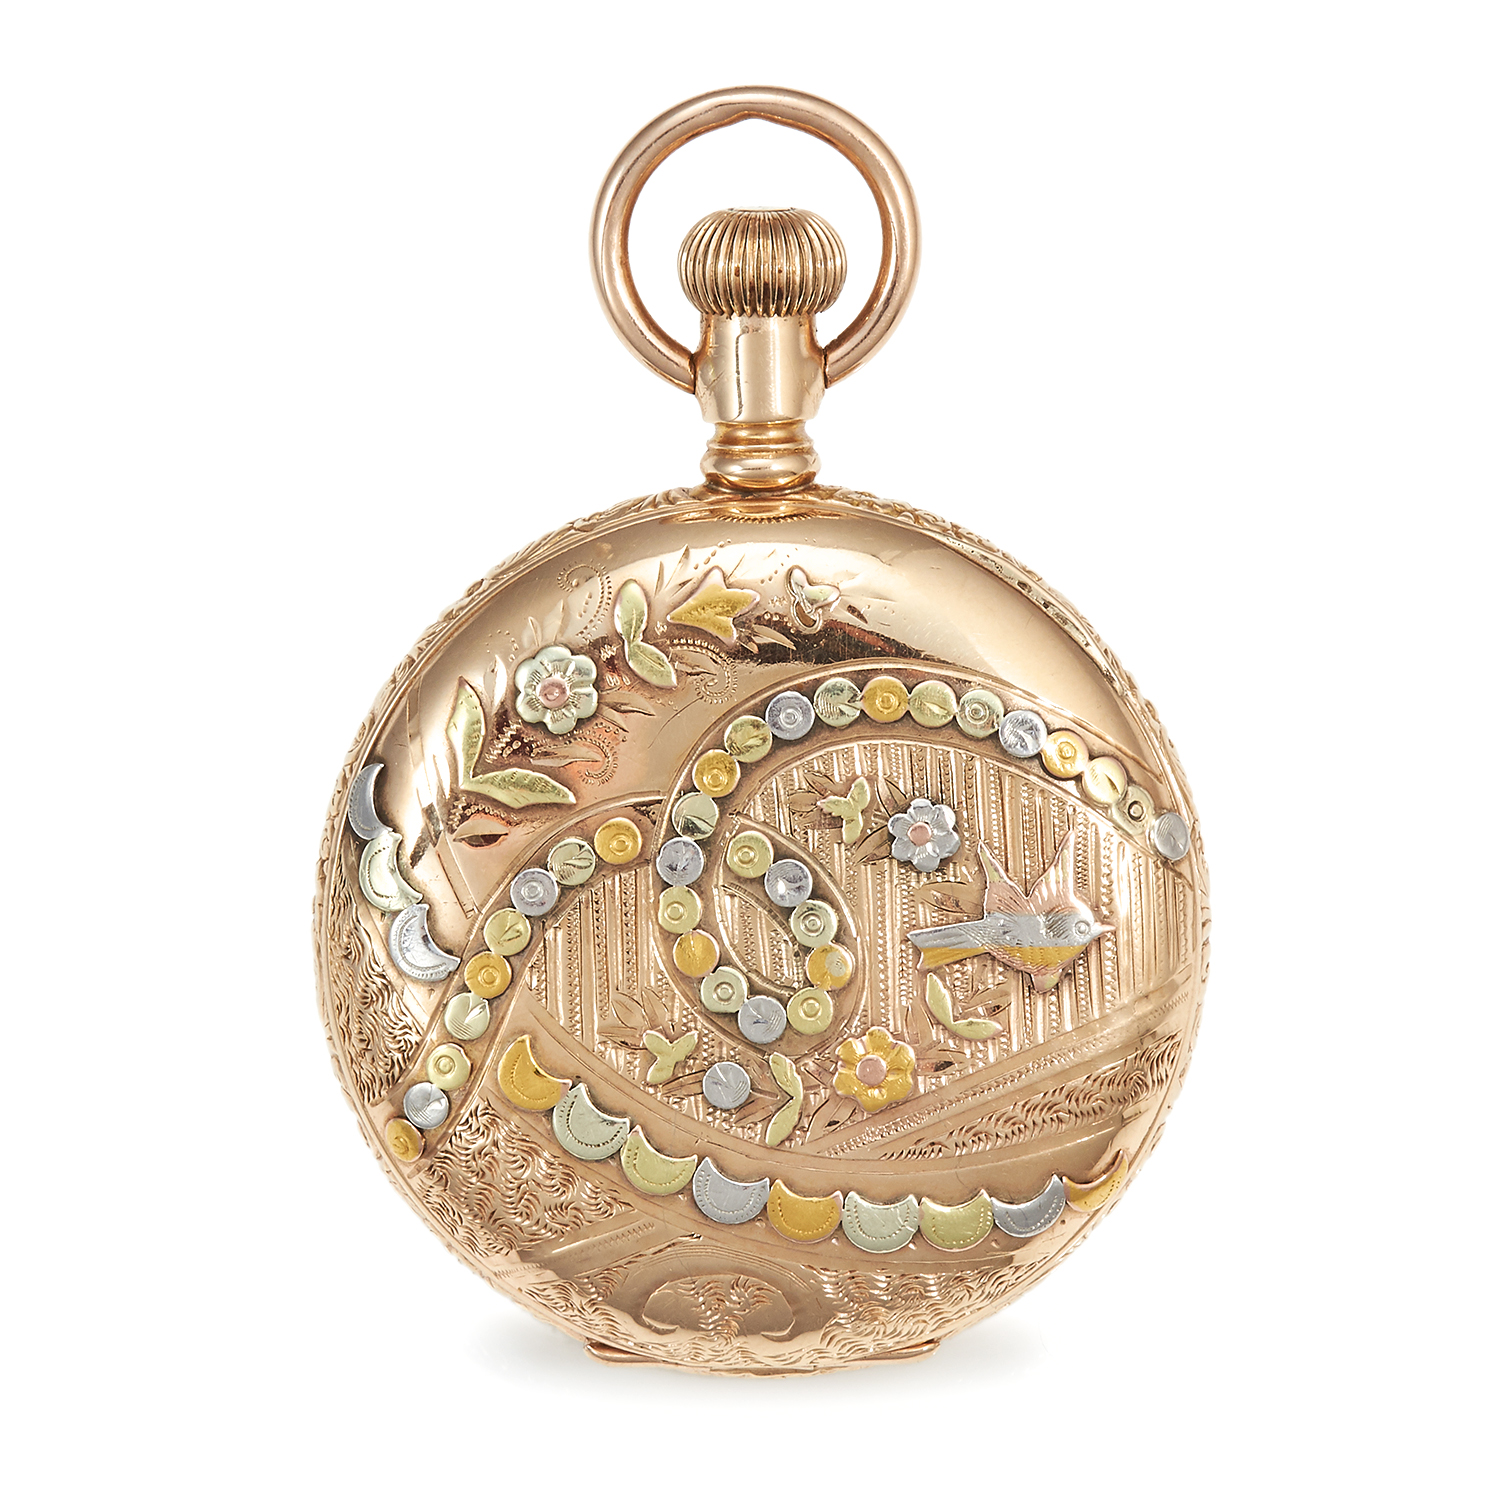 Los 472 - AN ANTIQUE POCKET WATCH, WALTHAM in 14ct gold, the circular case decorated with varicoloured gold